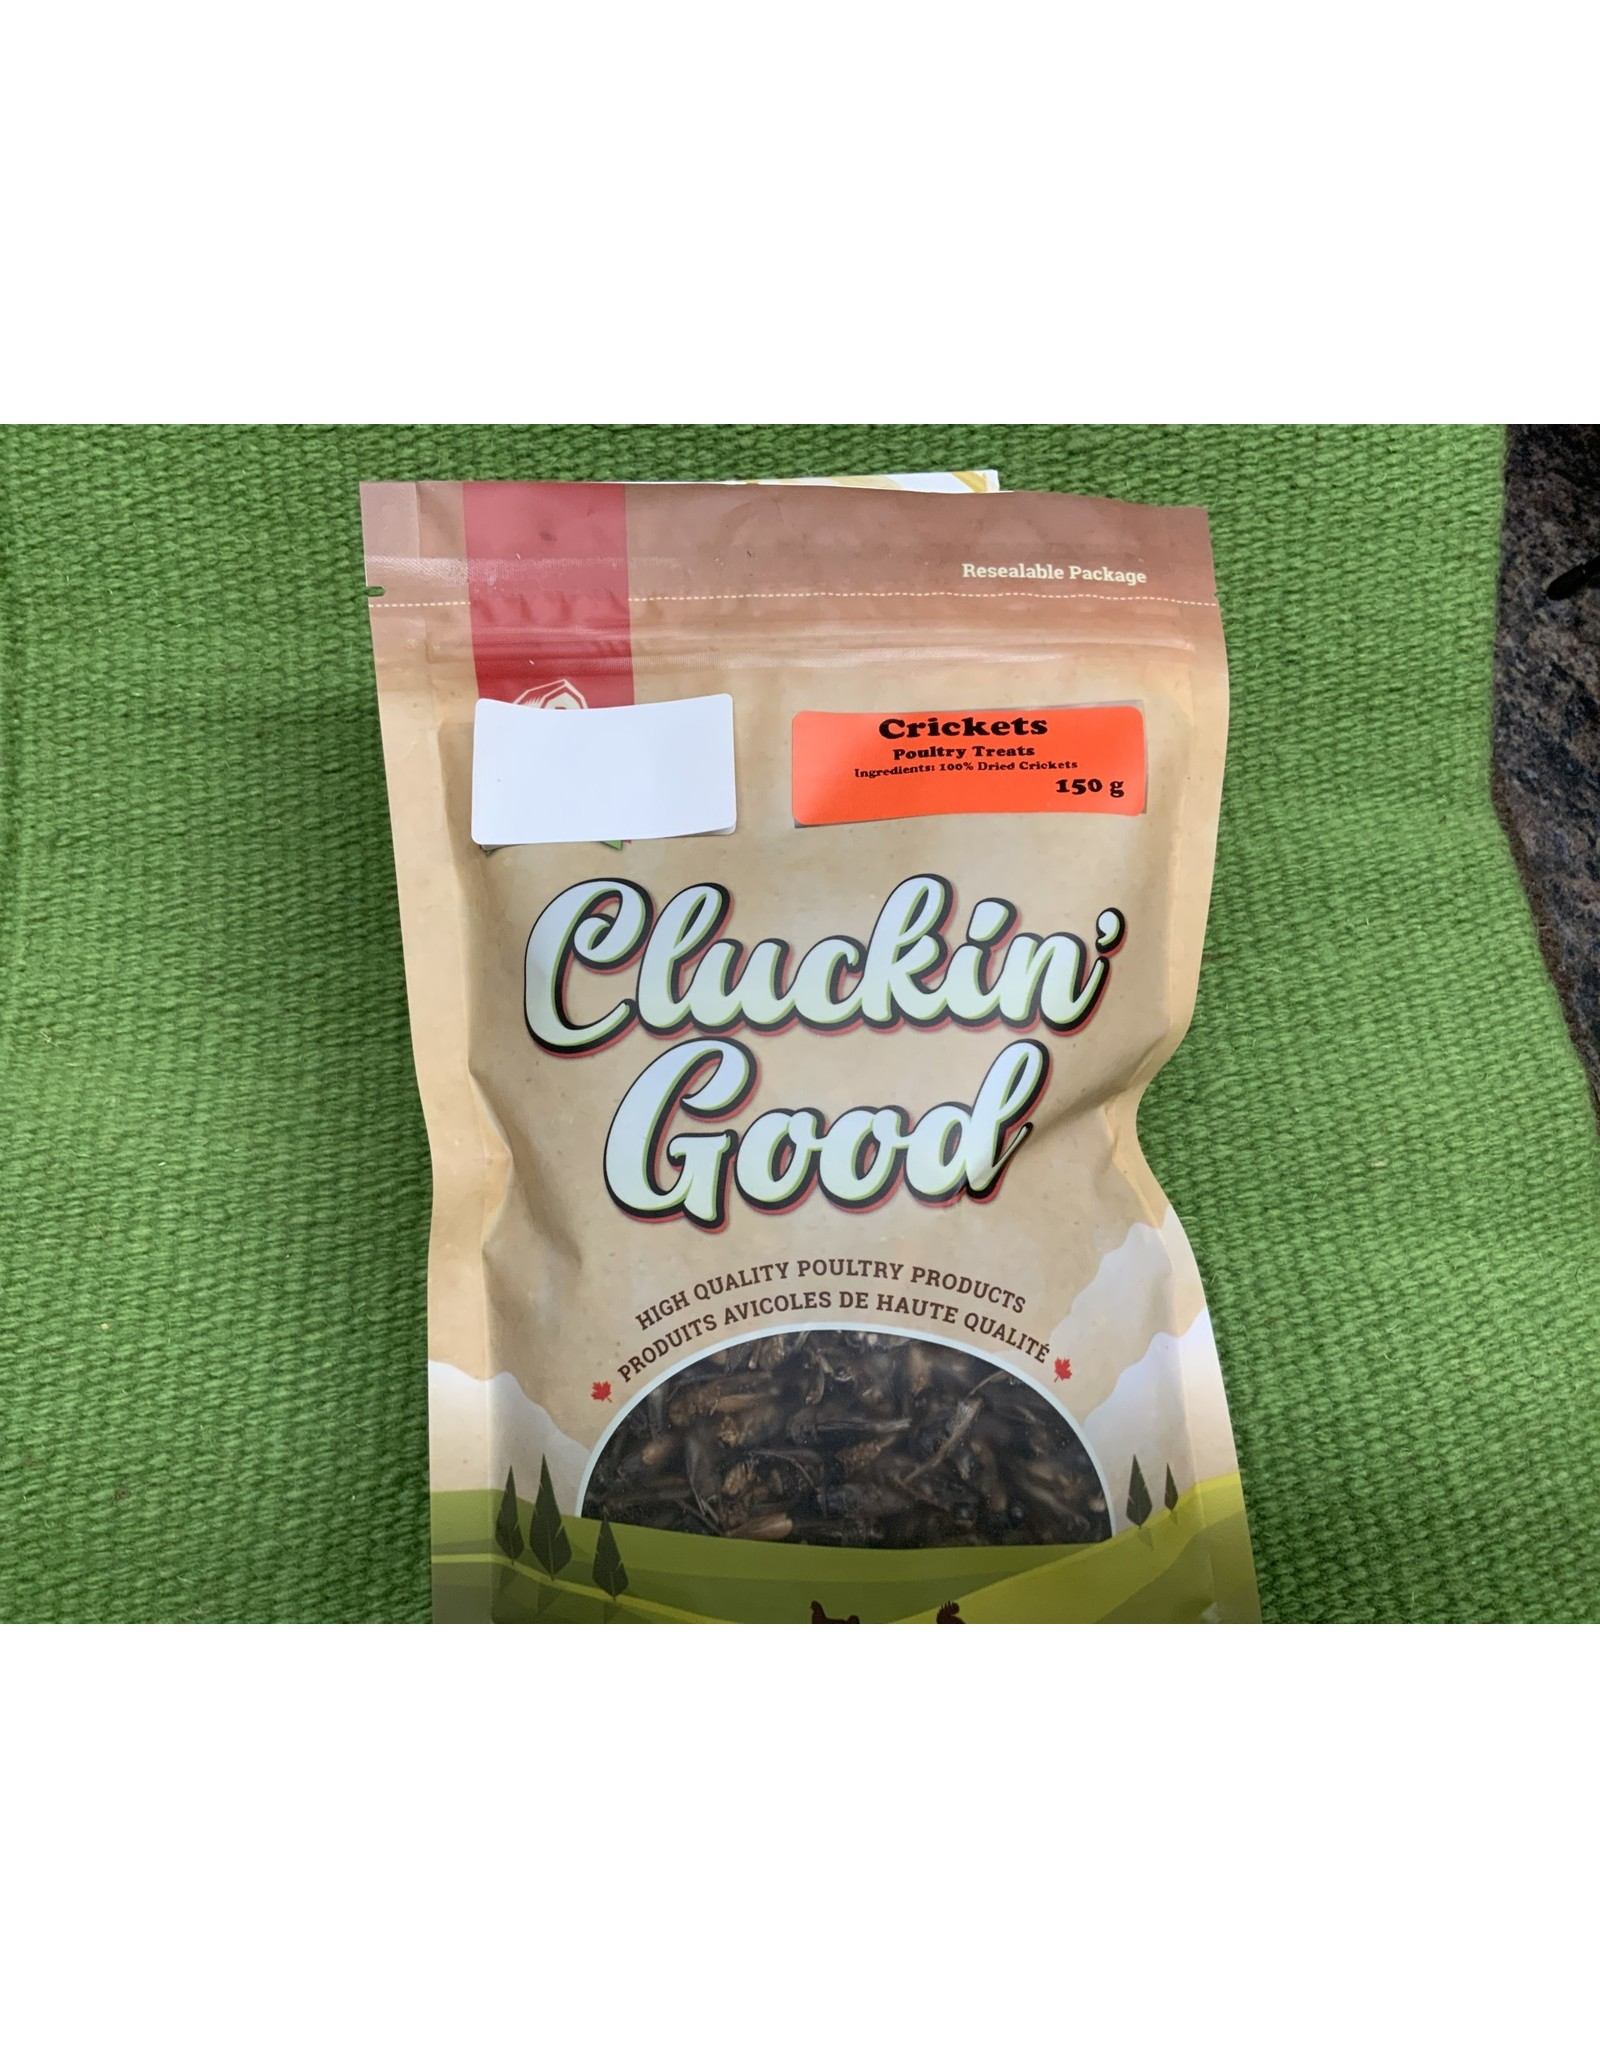 Clucking Good Crickets Poultry Treats 150g 12 bags / per box